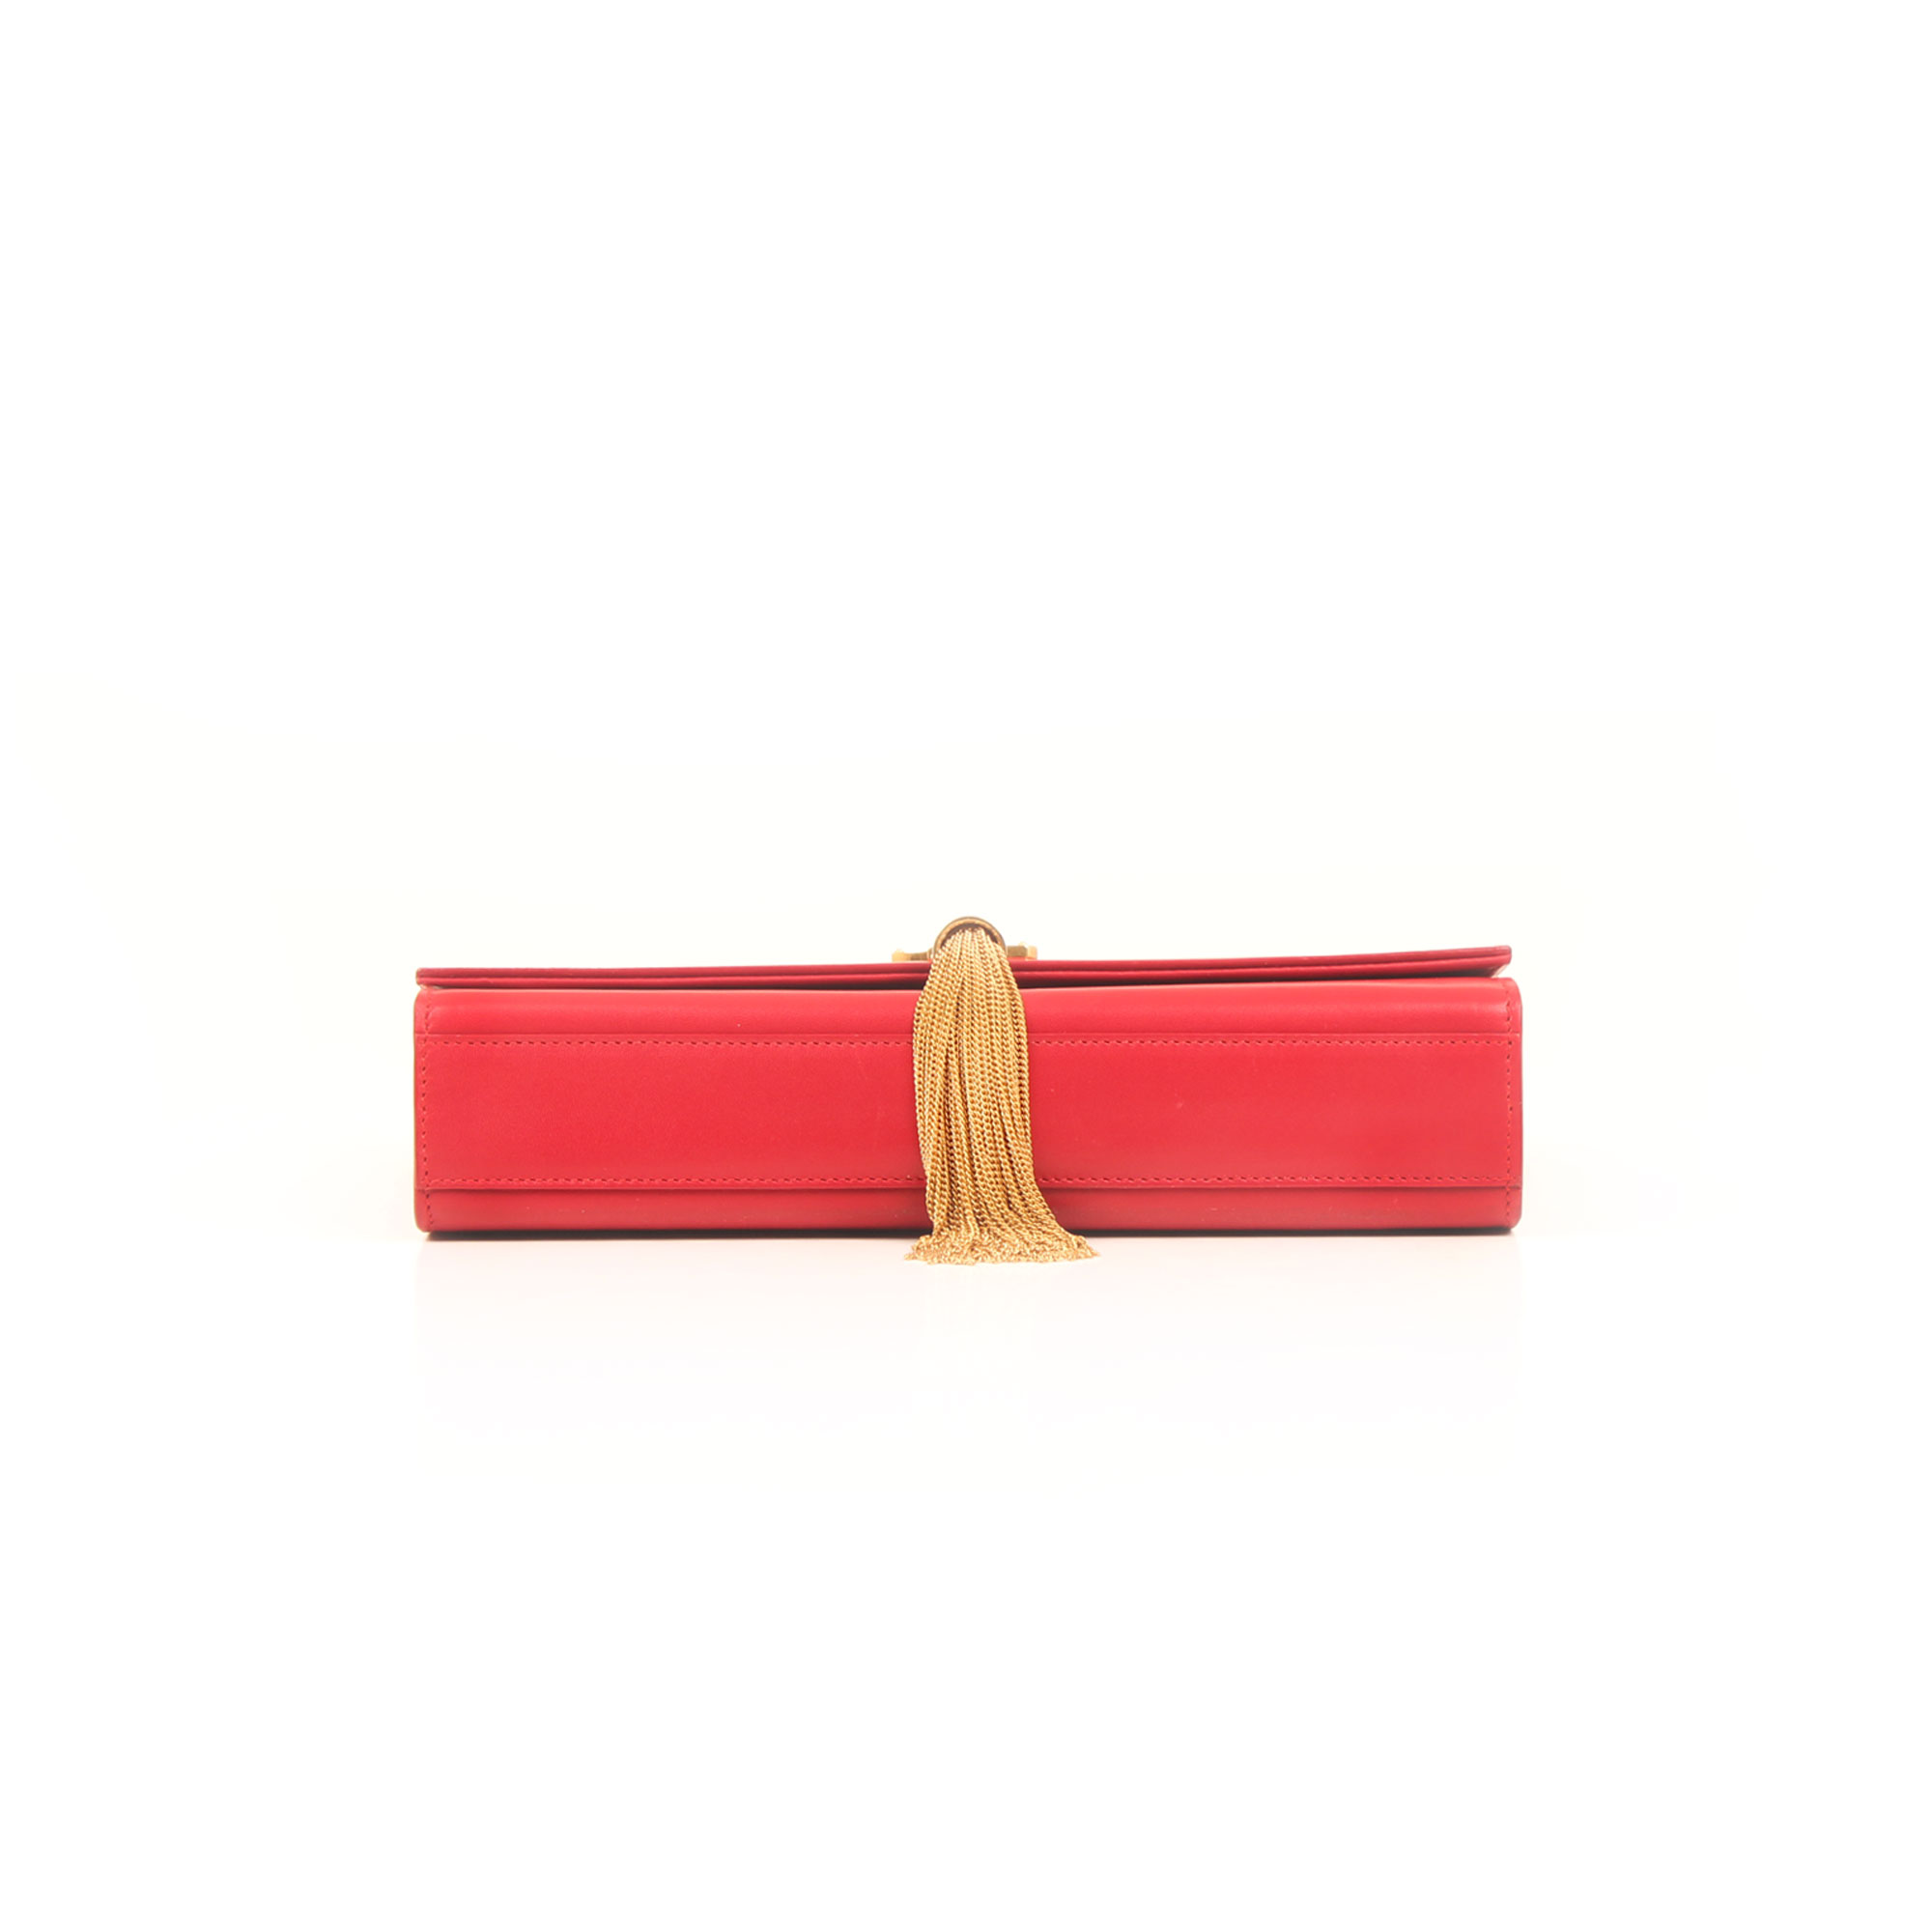 Base image of ysl kate medium bag red calfskin leather